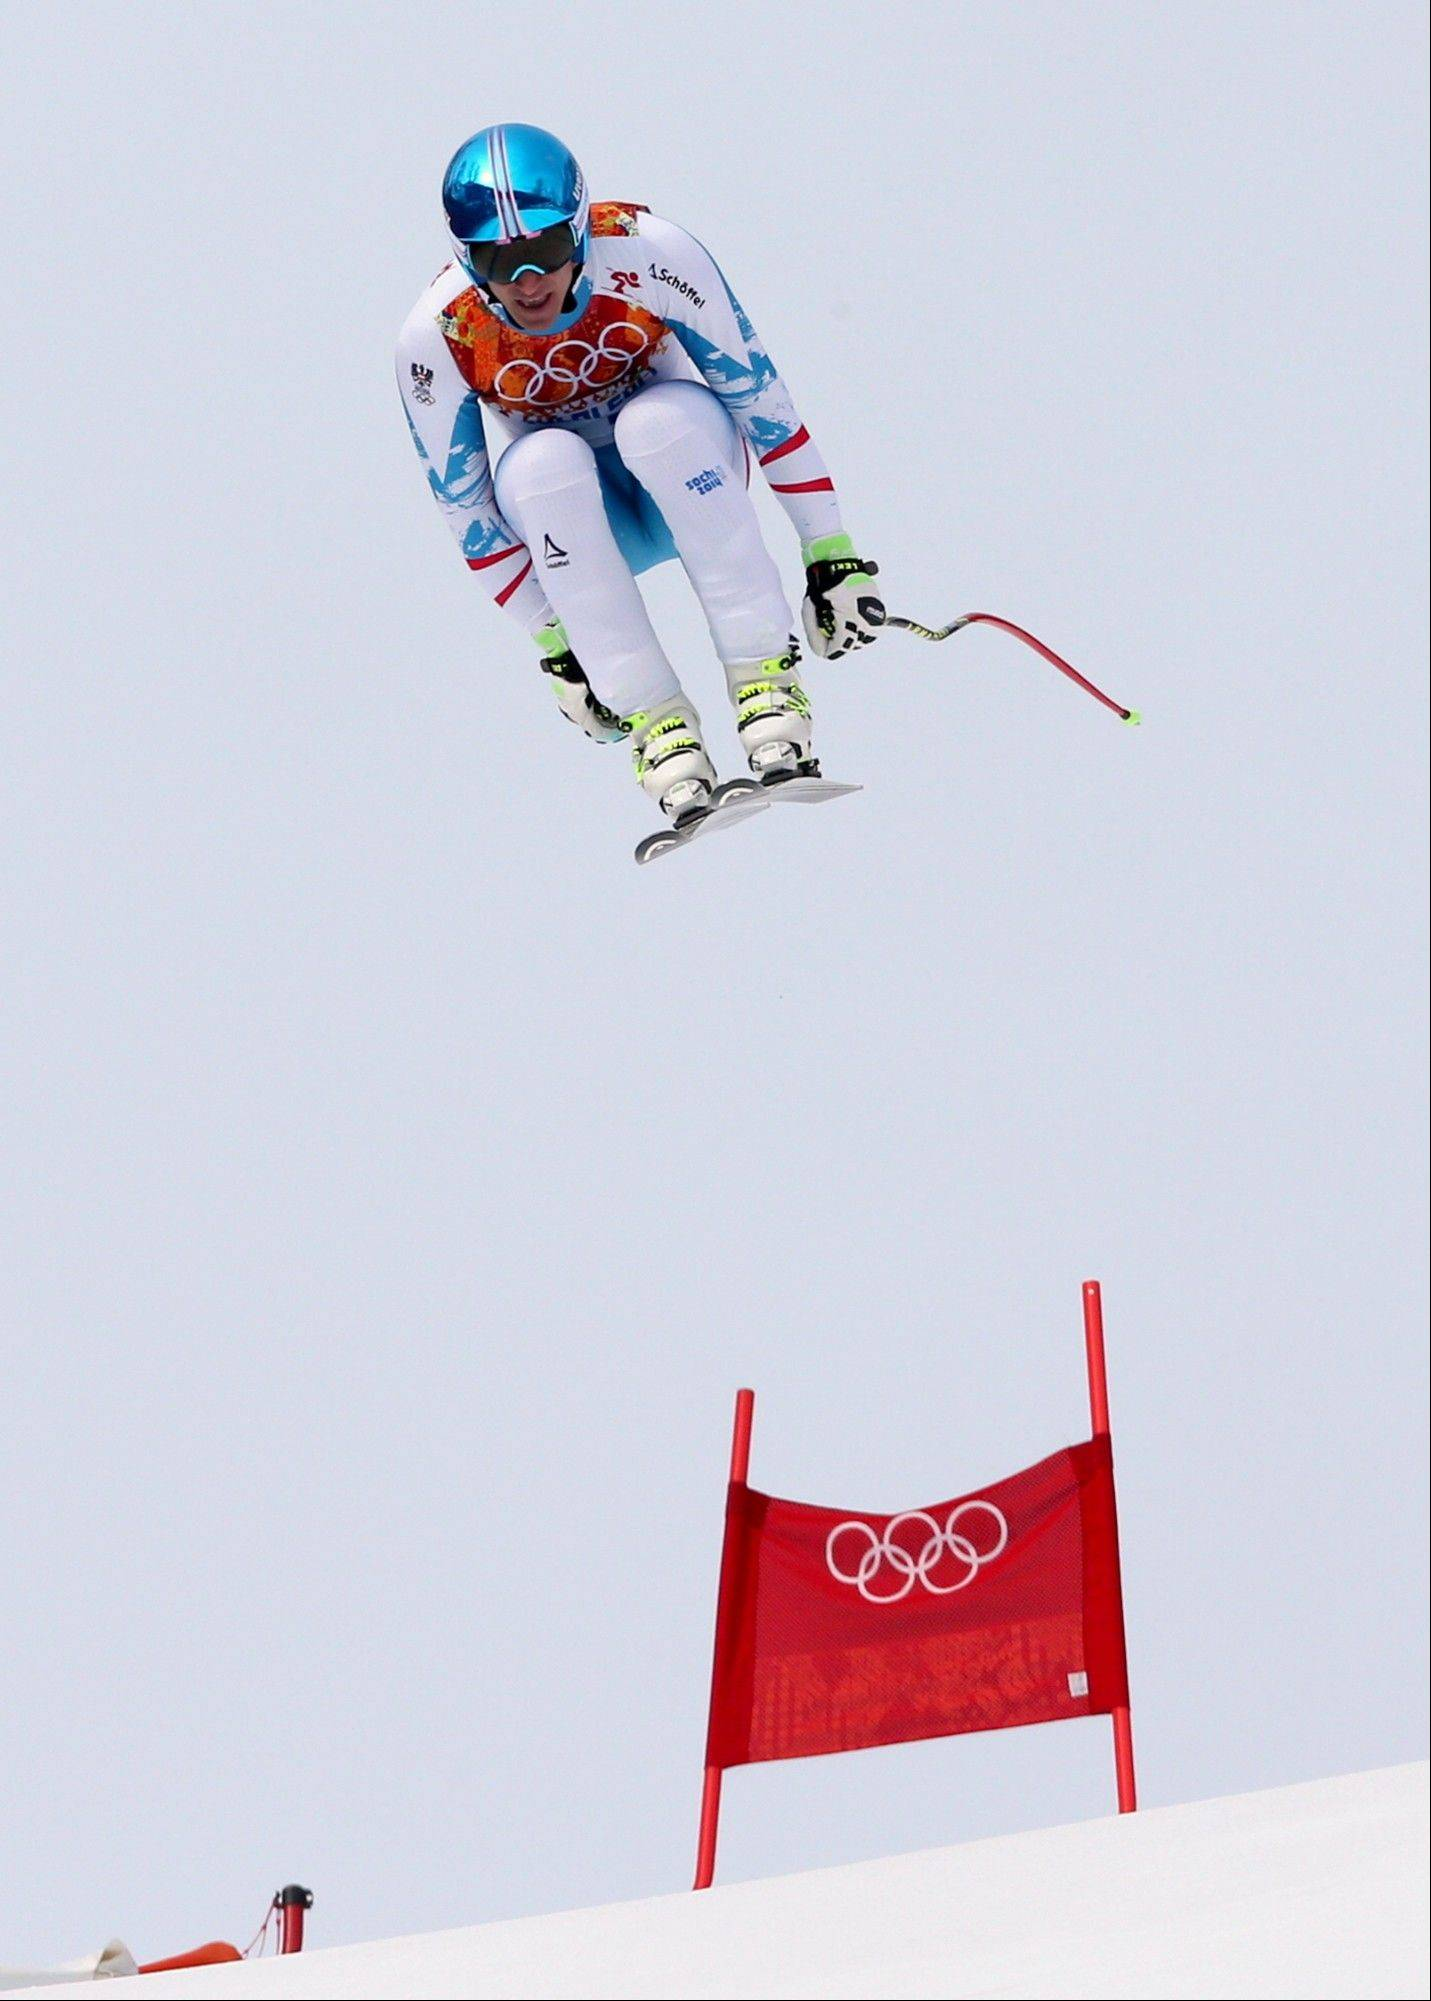 Austria's gold medalist Matthias Mayer jumps during the men's downhill at the Sochi 2014 Winter Olympics, Sunday, Feb. 9, 2014, in Krasnaya Polyana, Russia.